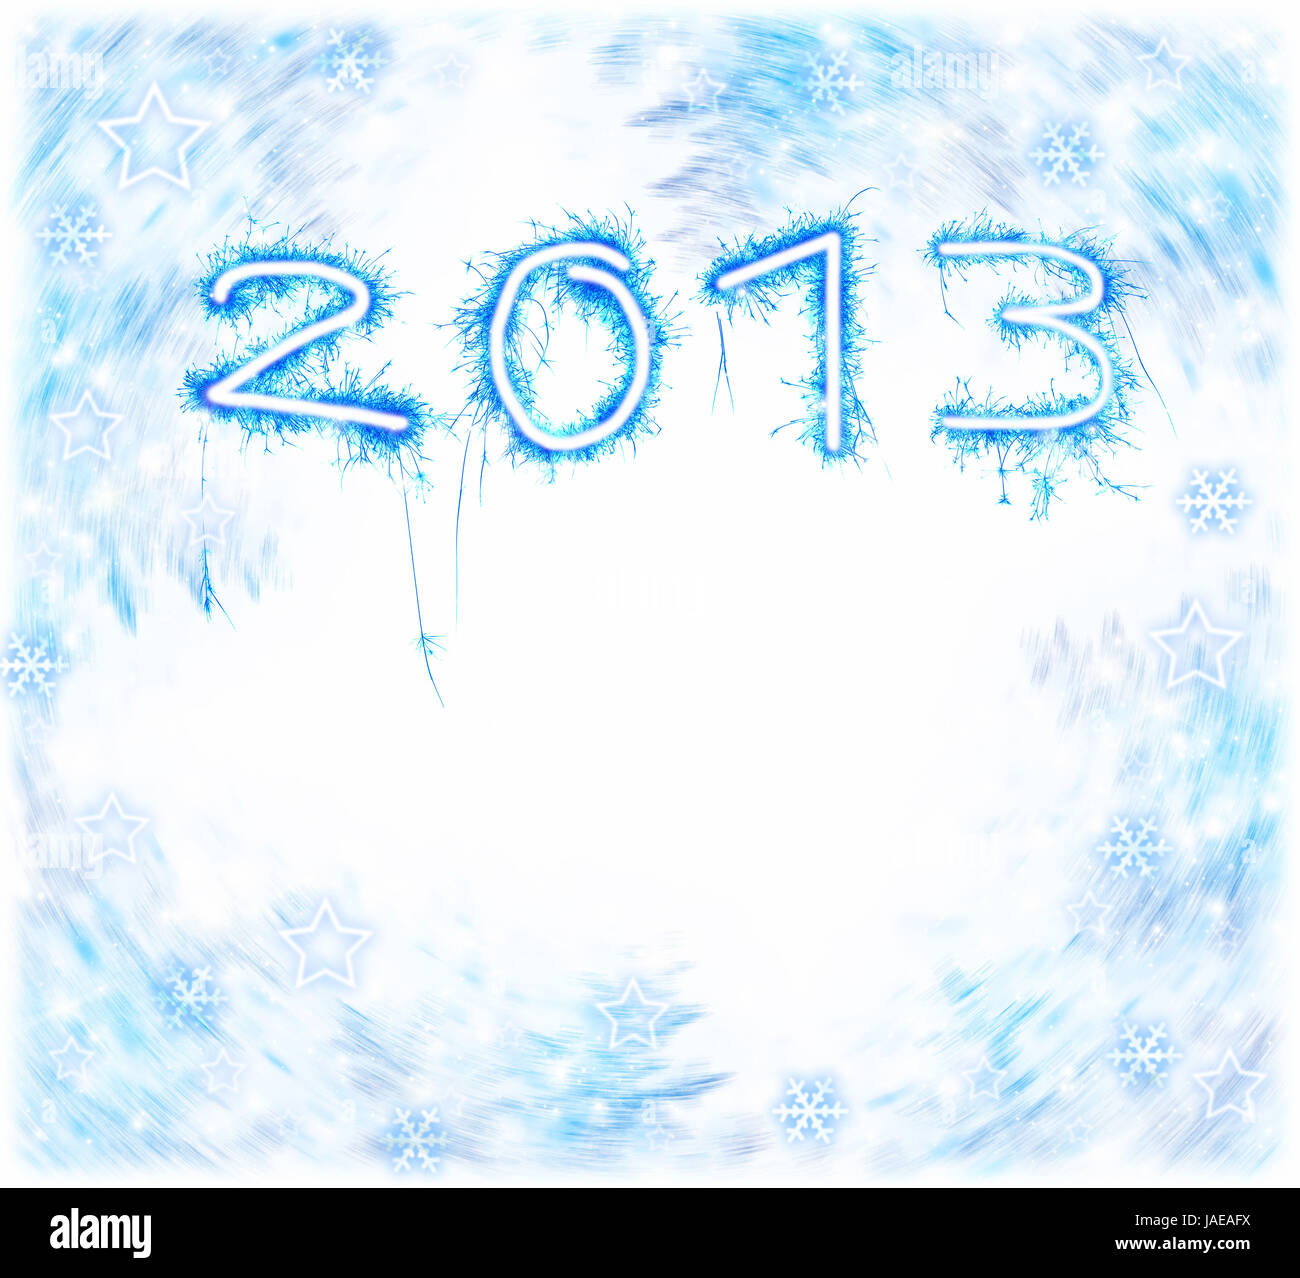 Image of New Year festive frostwork, abstract holiday background, beautiful blue digits on white background, 2013 - Stock Image